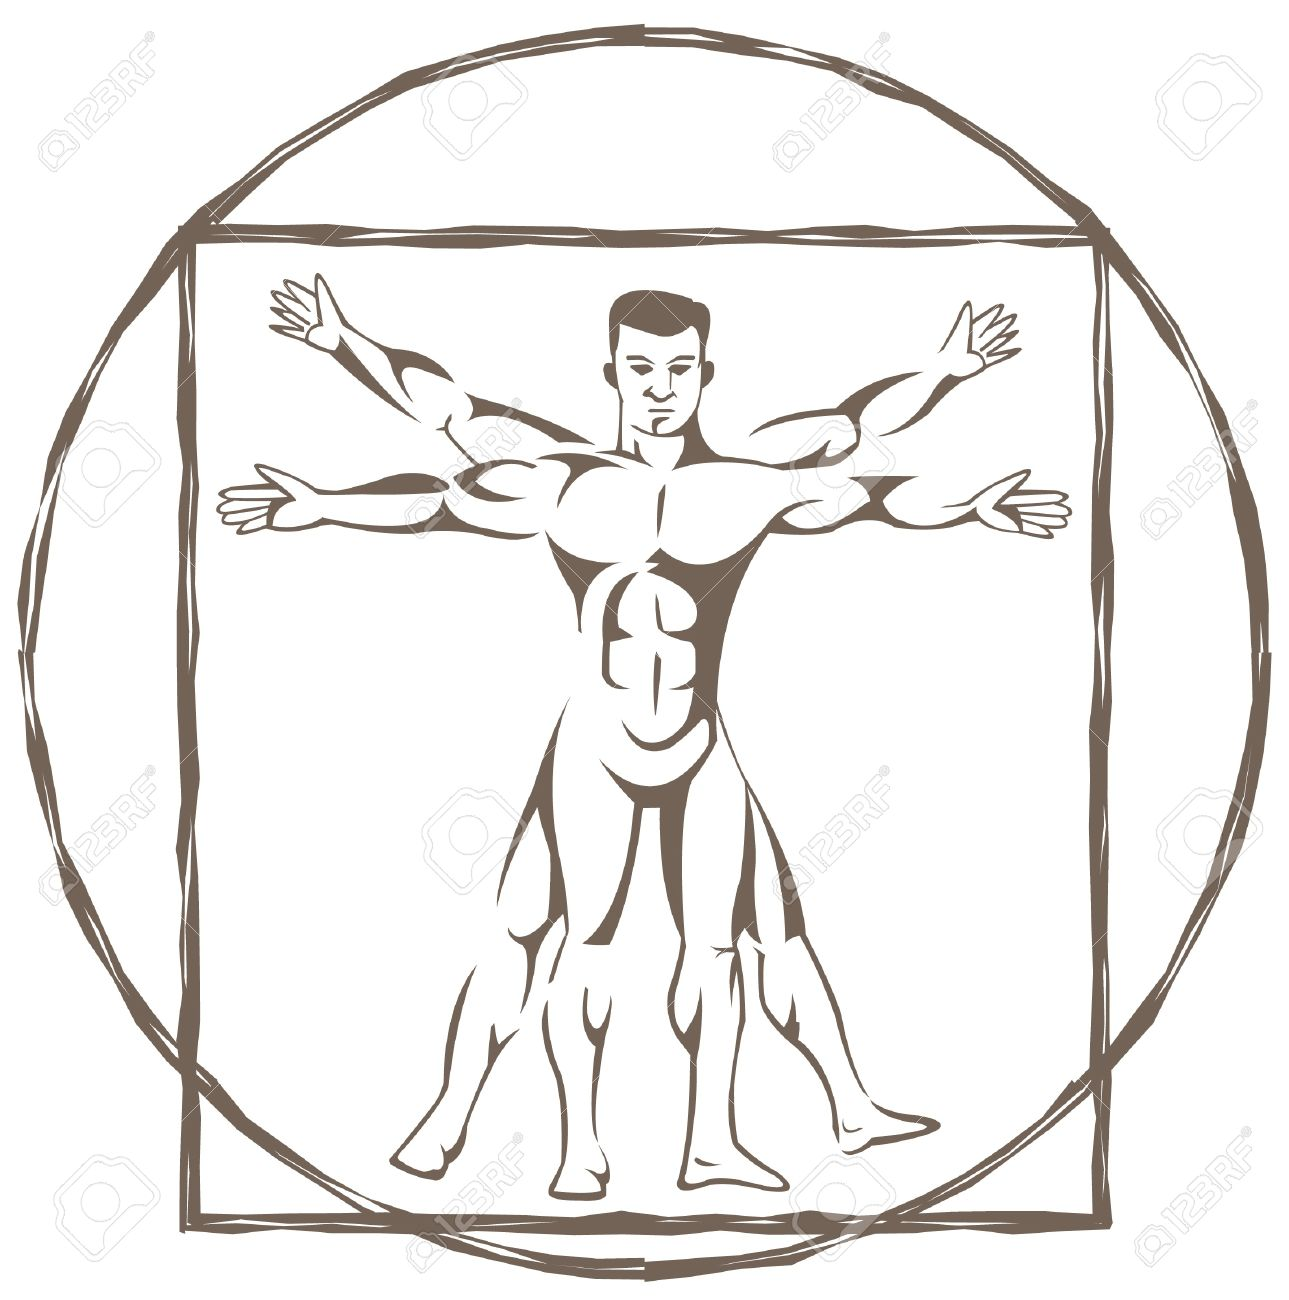 vitruvian man Stock Vector - 14291284